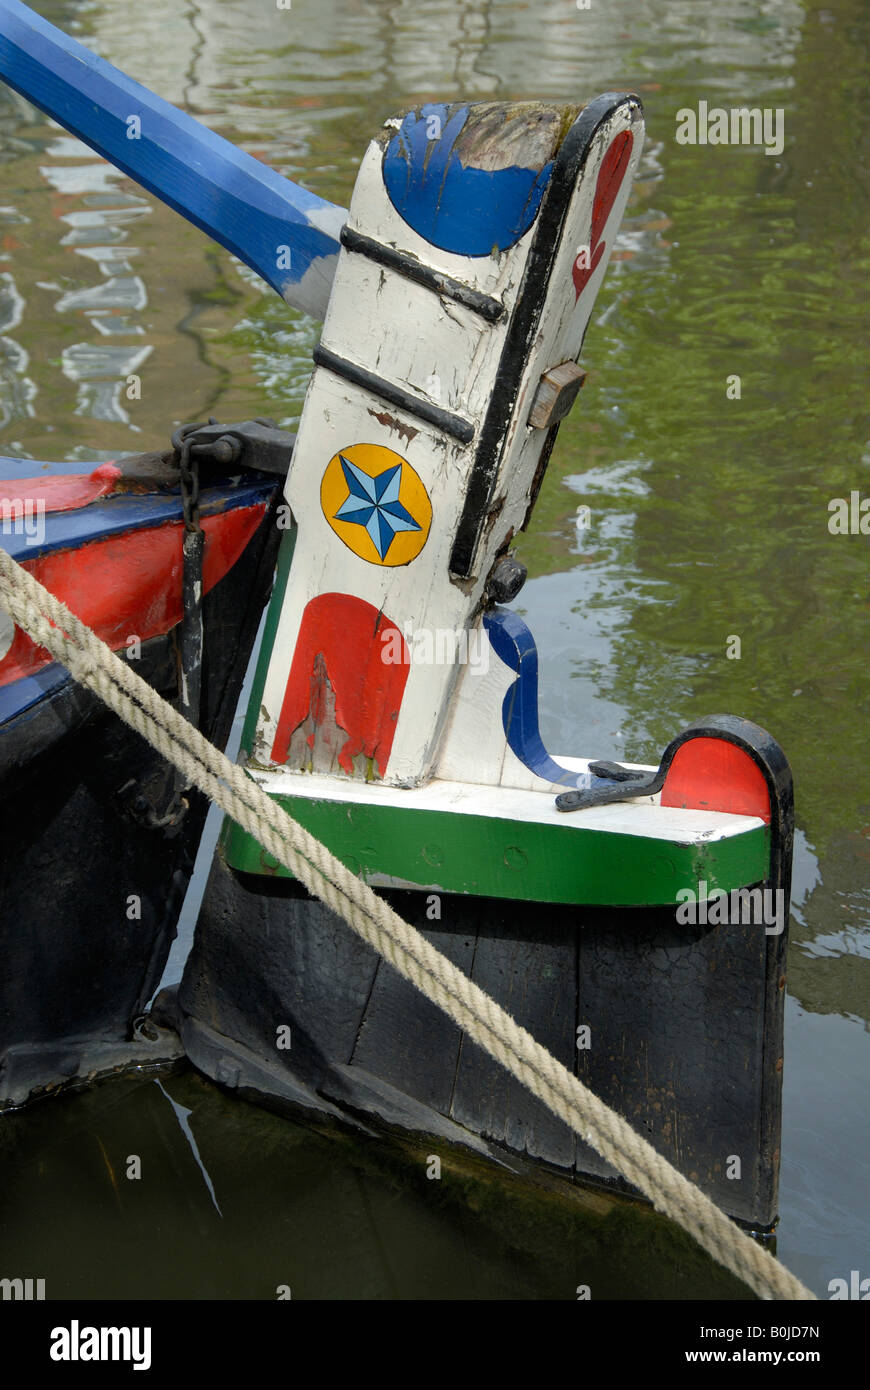 Old wooden rudder and tiller on stern of narrowboat butty, Little Venice, London, England - Stock Image